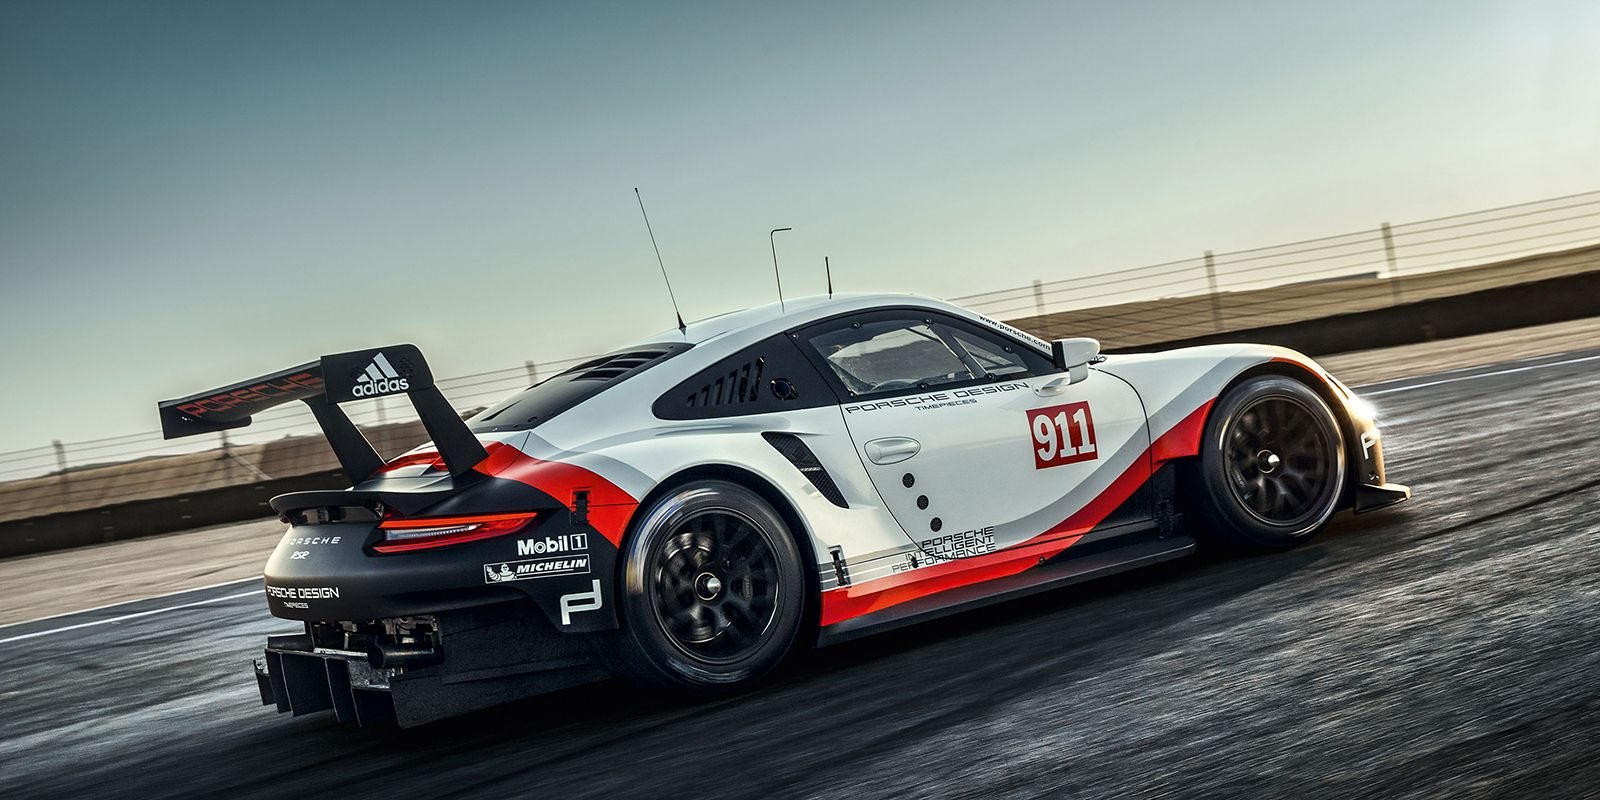 Why The Porsche 911 Rsr Had To Go Mid Engine Build Diagrams